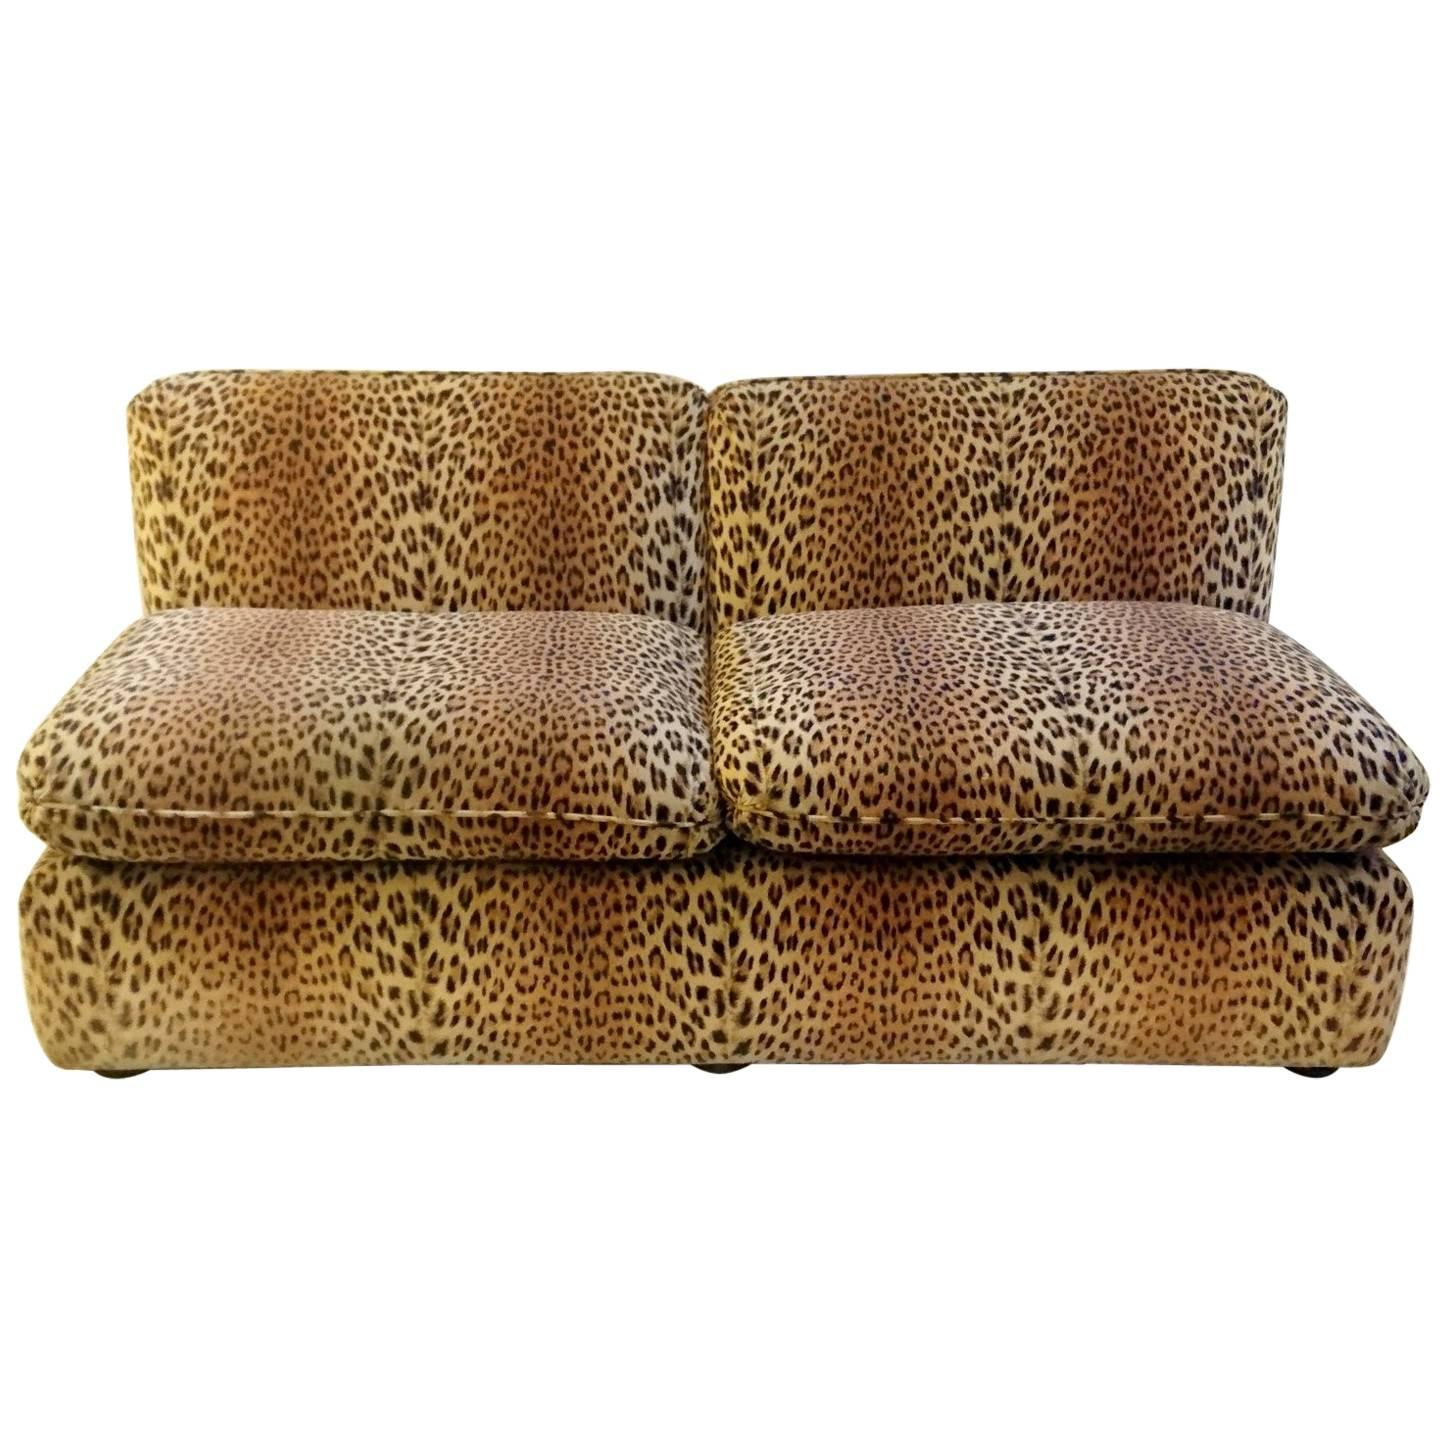 Great Vintage Sofa In Leopard Velvet By Cyrus Company Italy 1